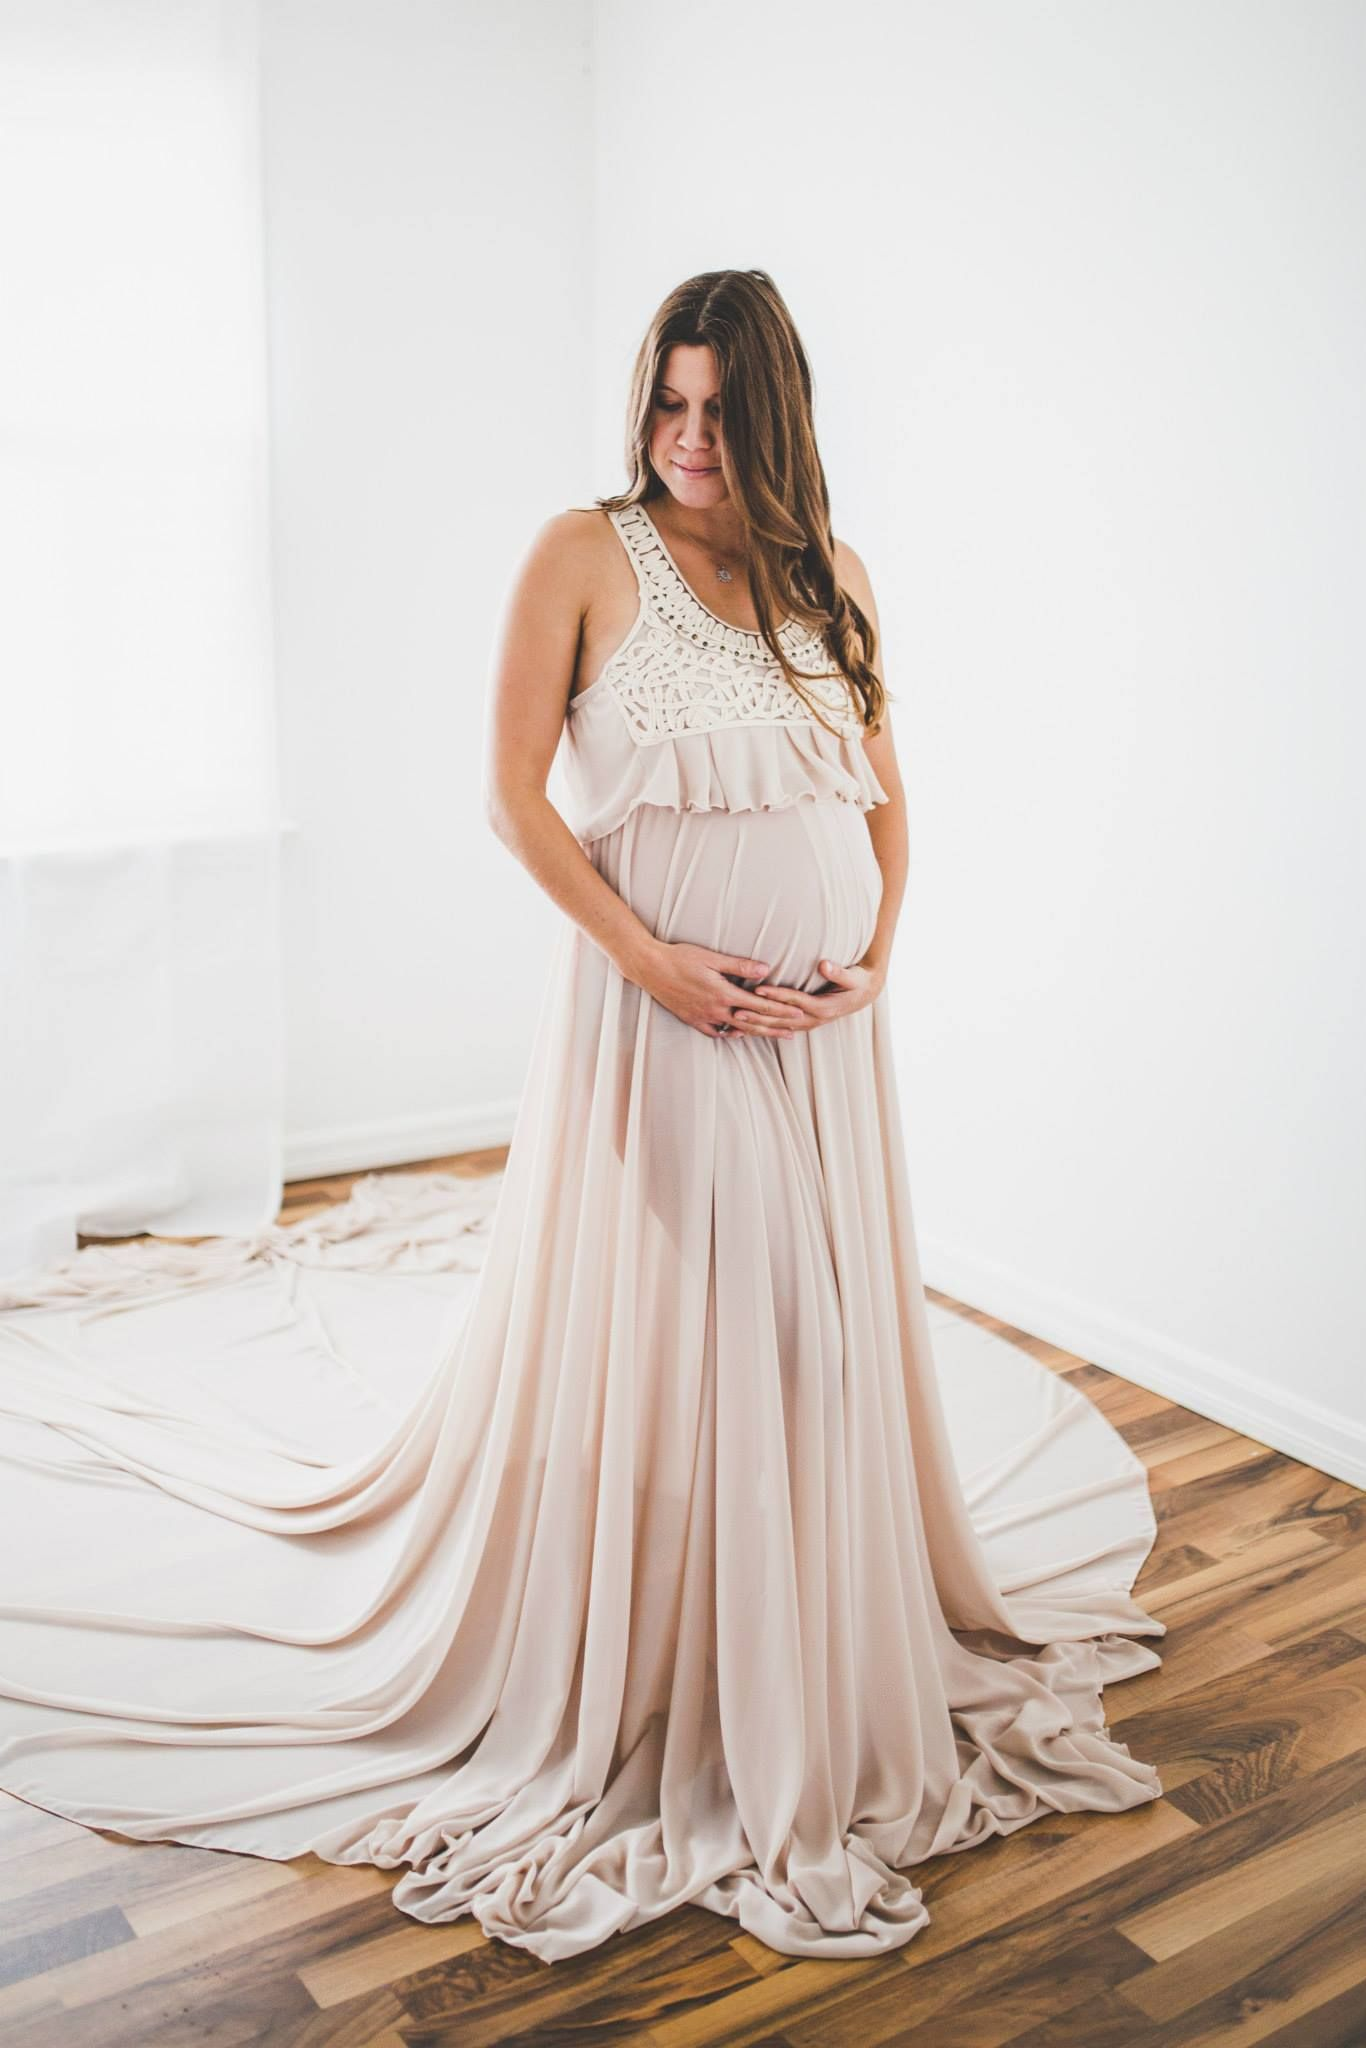 Maternity gown sewing pattern and tutorial by Chelsea Celeste ...